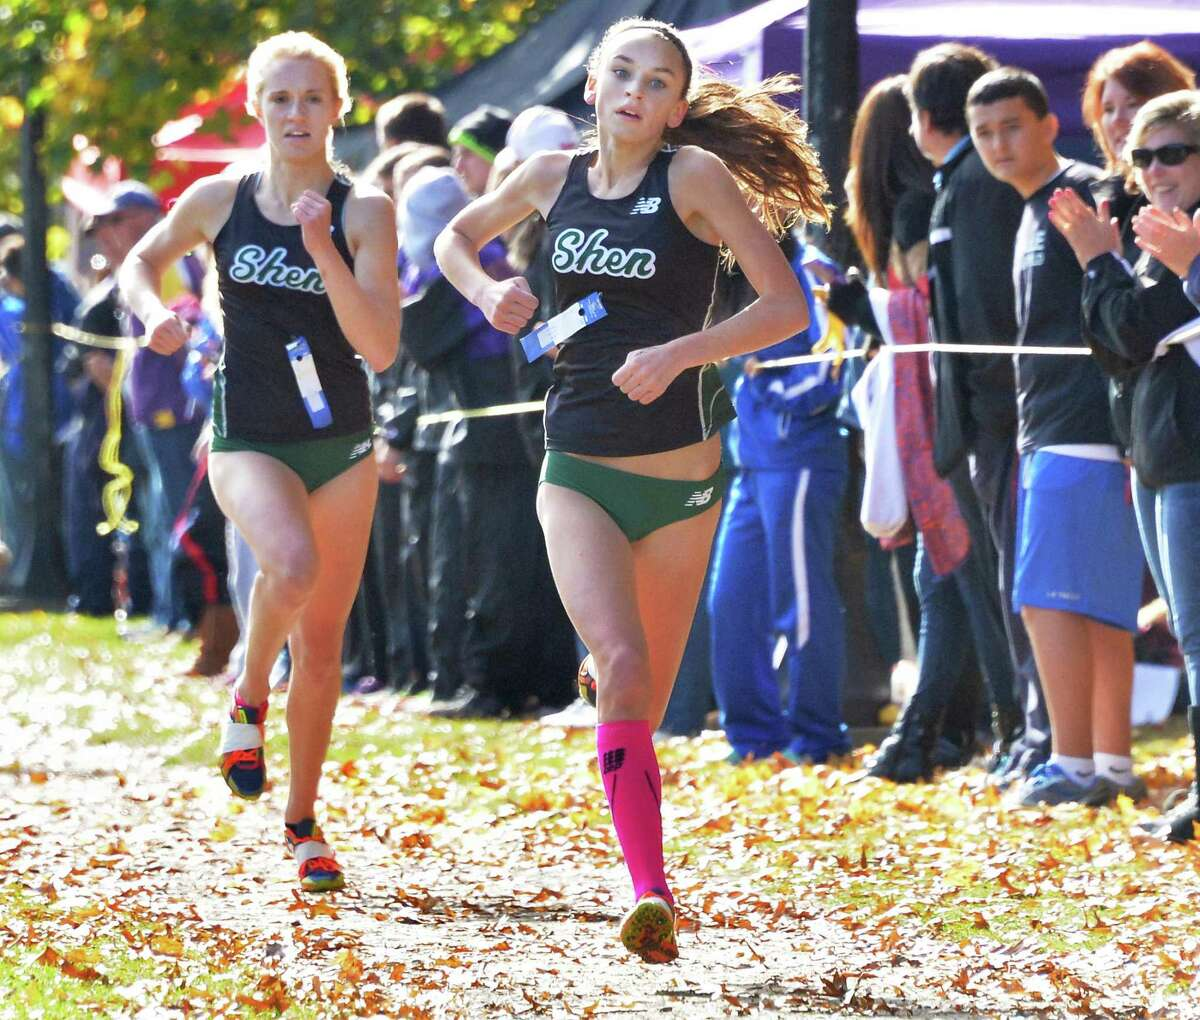 Shen's Daniella Jordan, right, and teammate Julia Zachgo finish first and second in the girl's Class A Section II Cross Country Championships at Saratoga Spa State Park Friday Oct. 31, 2014, in Saratoga Springs, NY. (John Carl D'Annibale / Times Union)